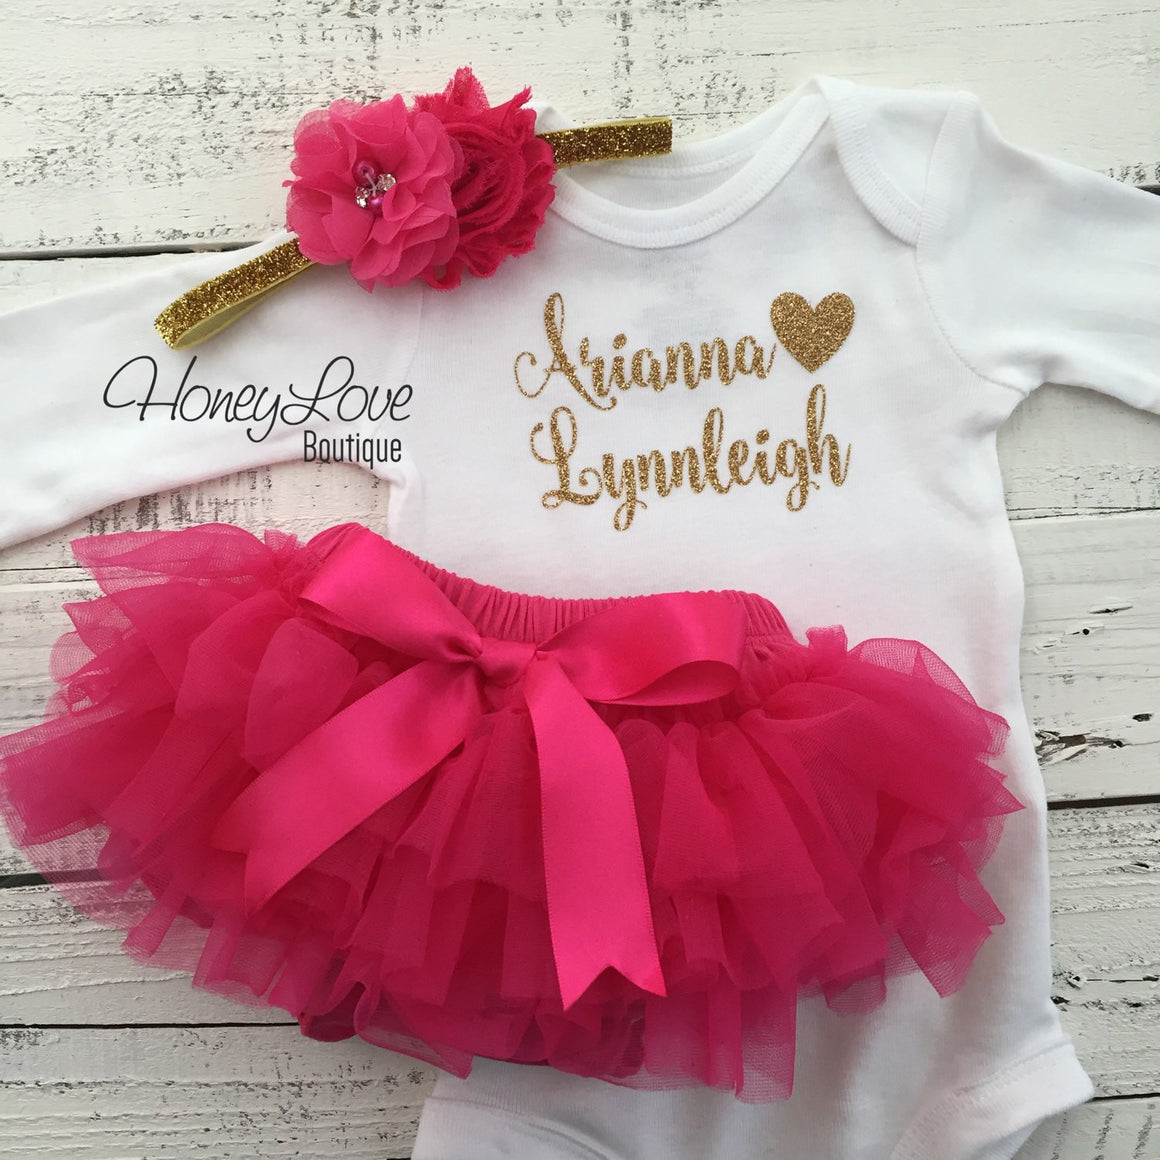 PERSONALIZED SET gold glitter bodysuit, hot pink ruffle tutu skirt bloomers, flower headband, newborn baby girl take home hospital outfit - HoneyLoveBoutique